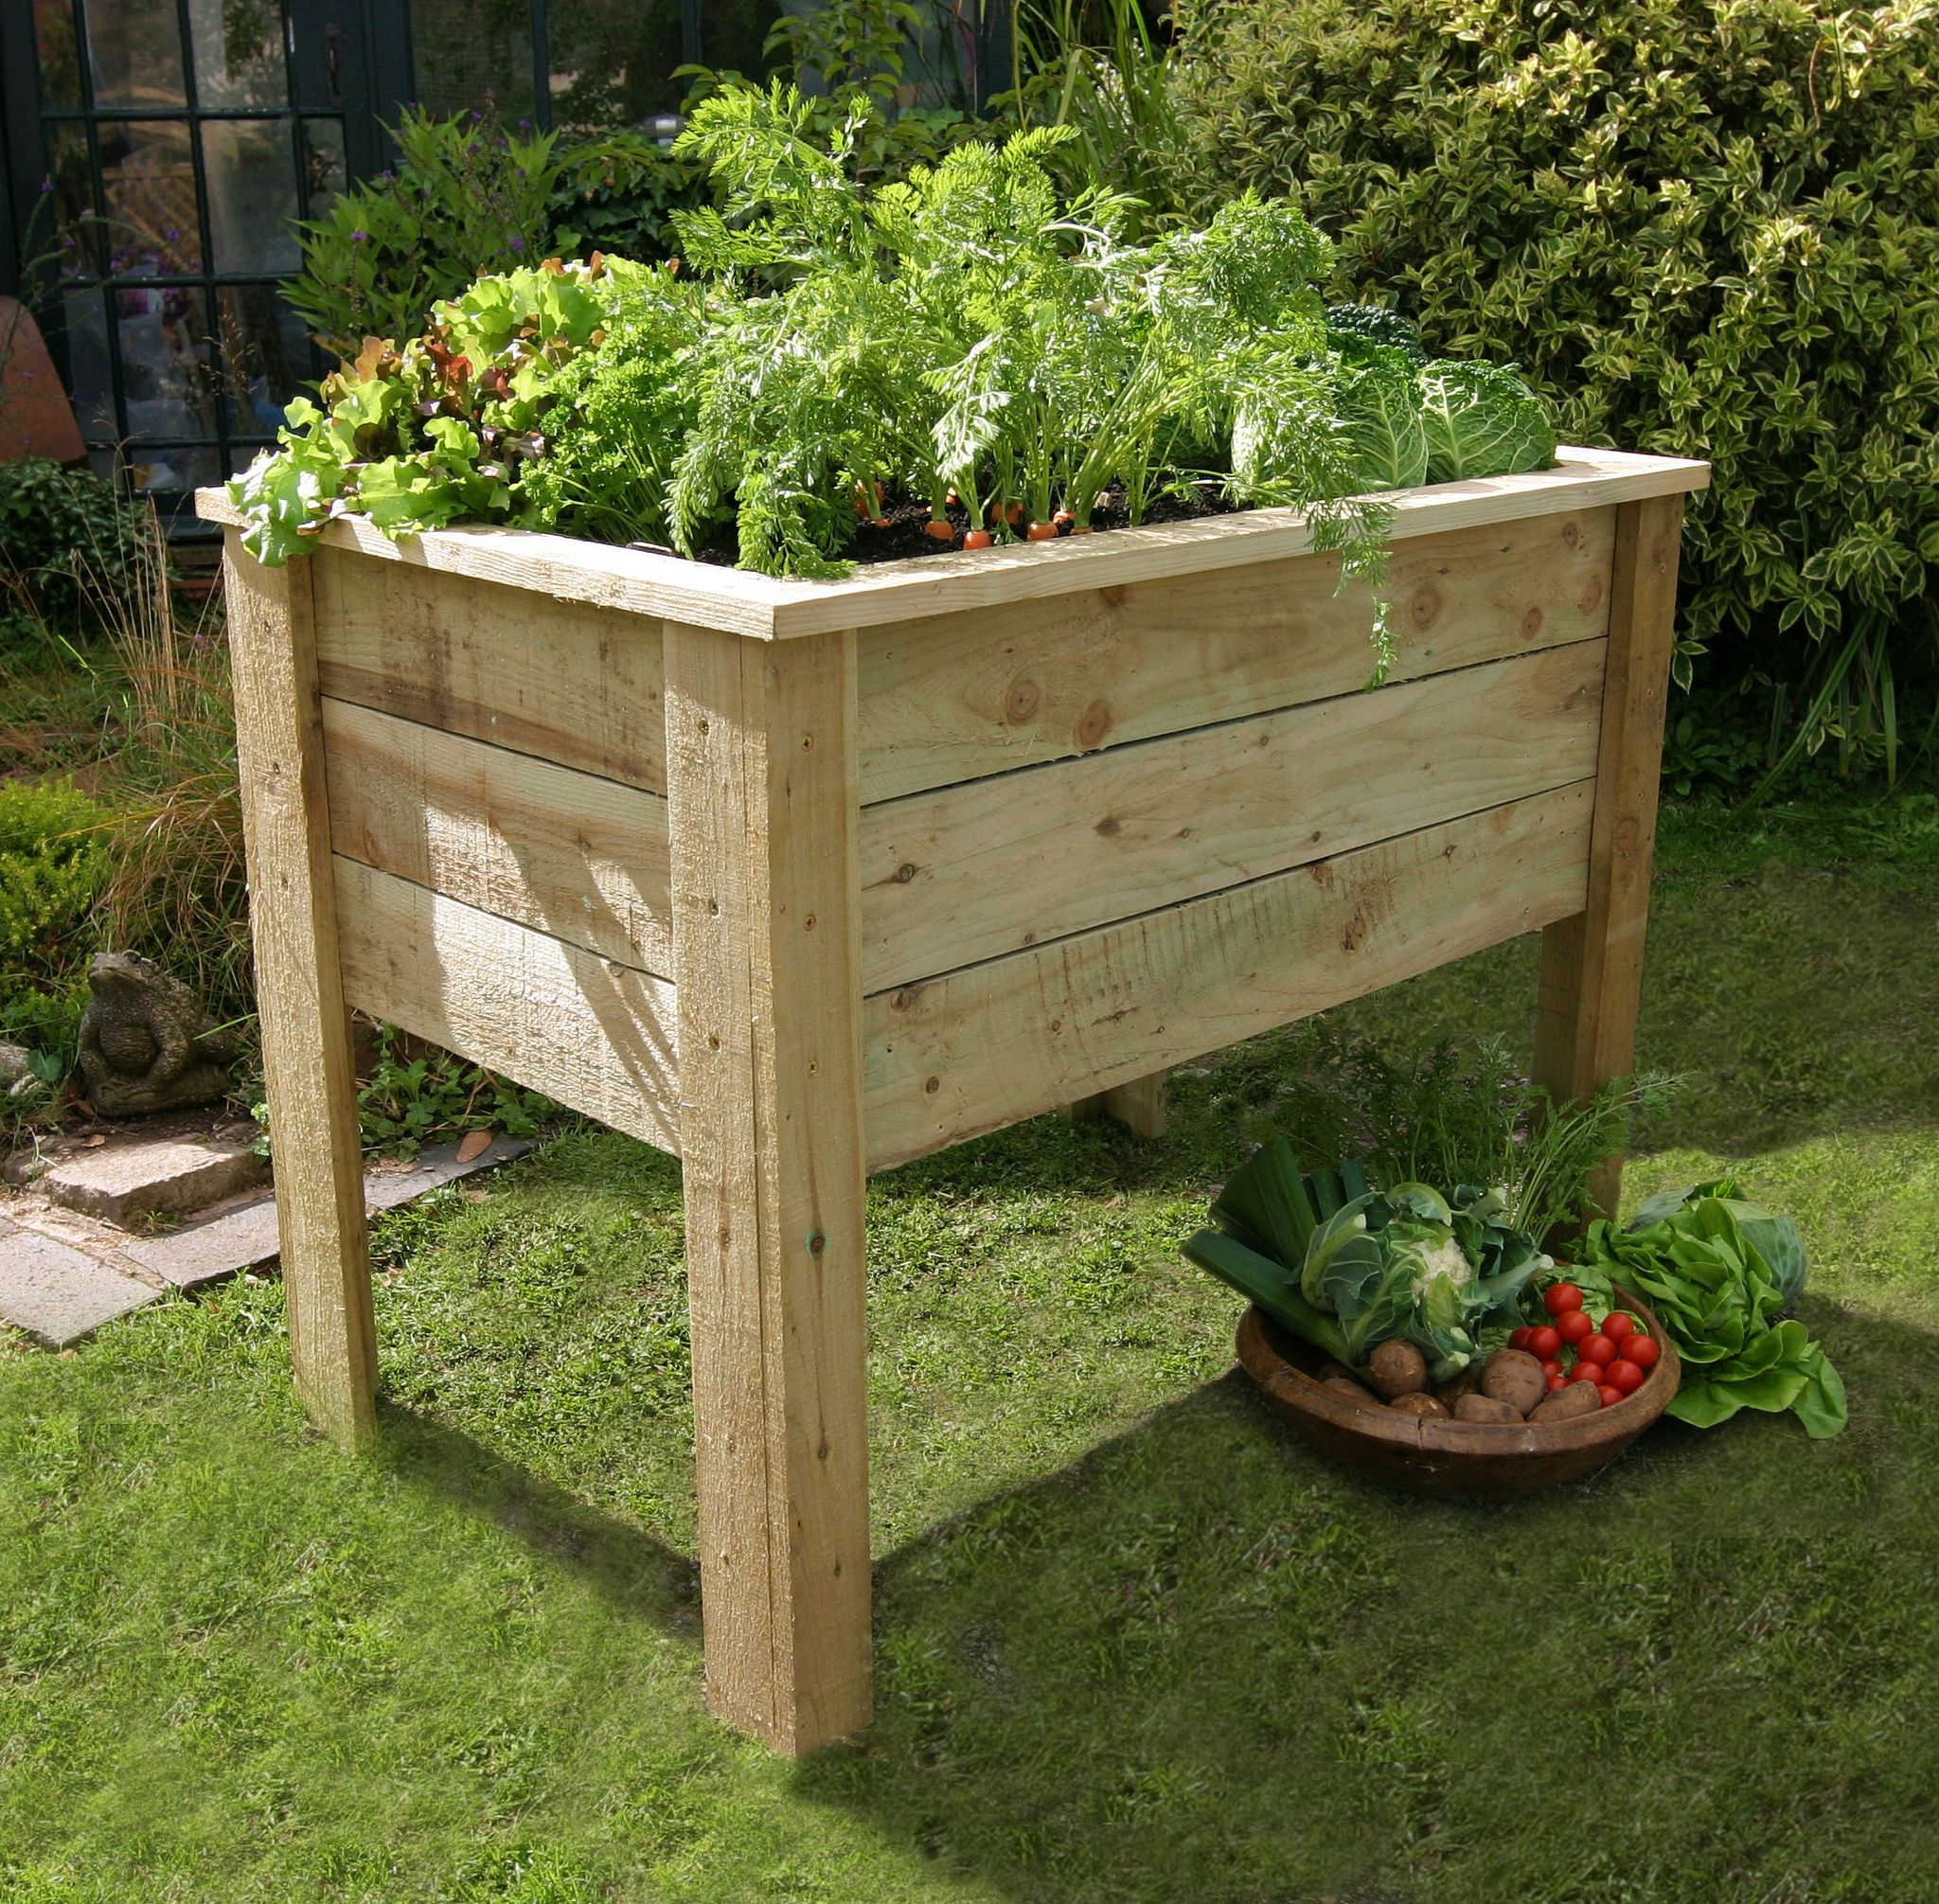 Gardening Beds: How To Build Portable Raised Garden Beds